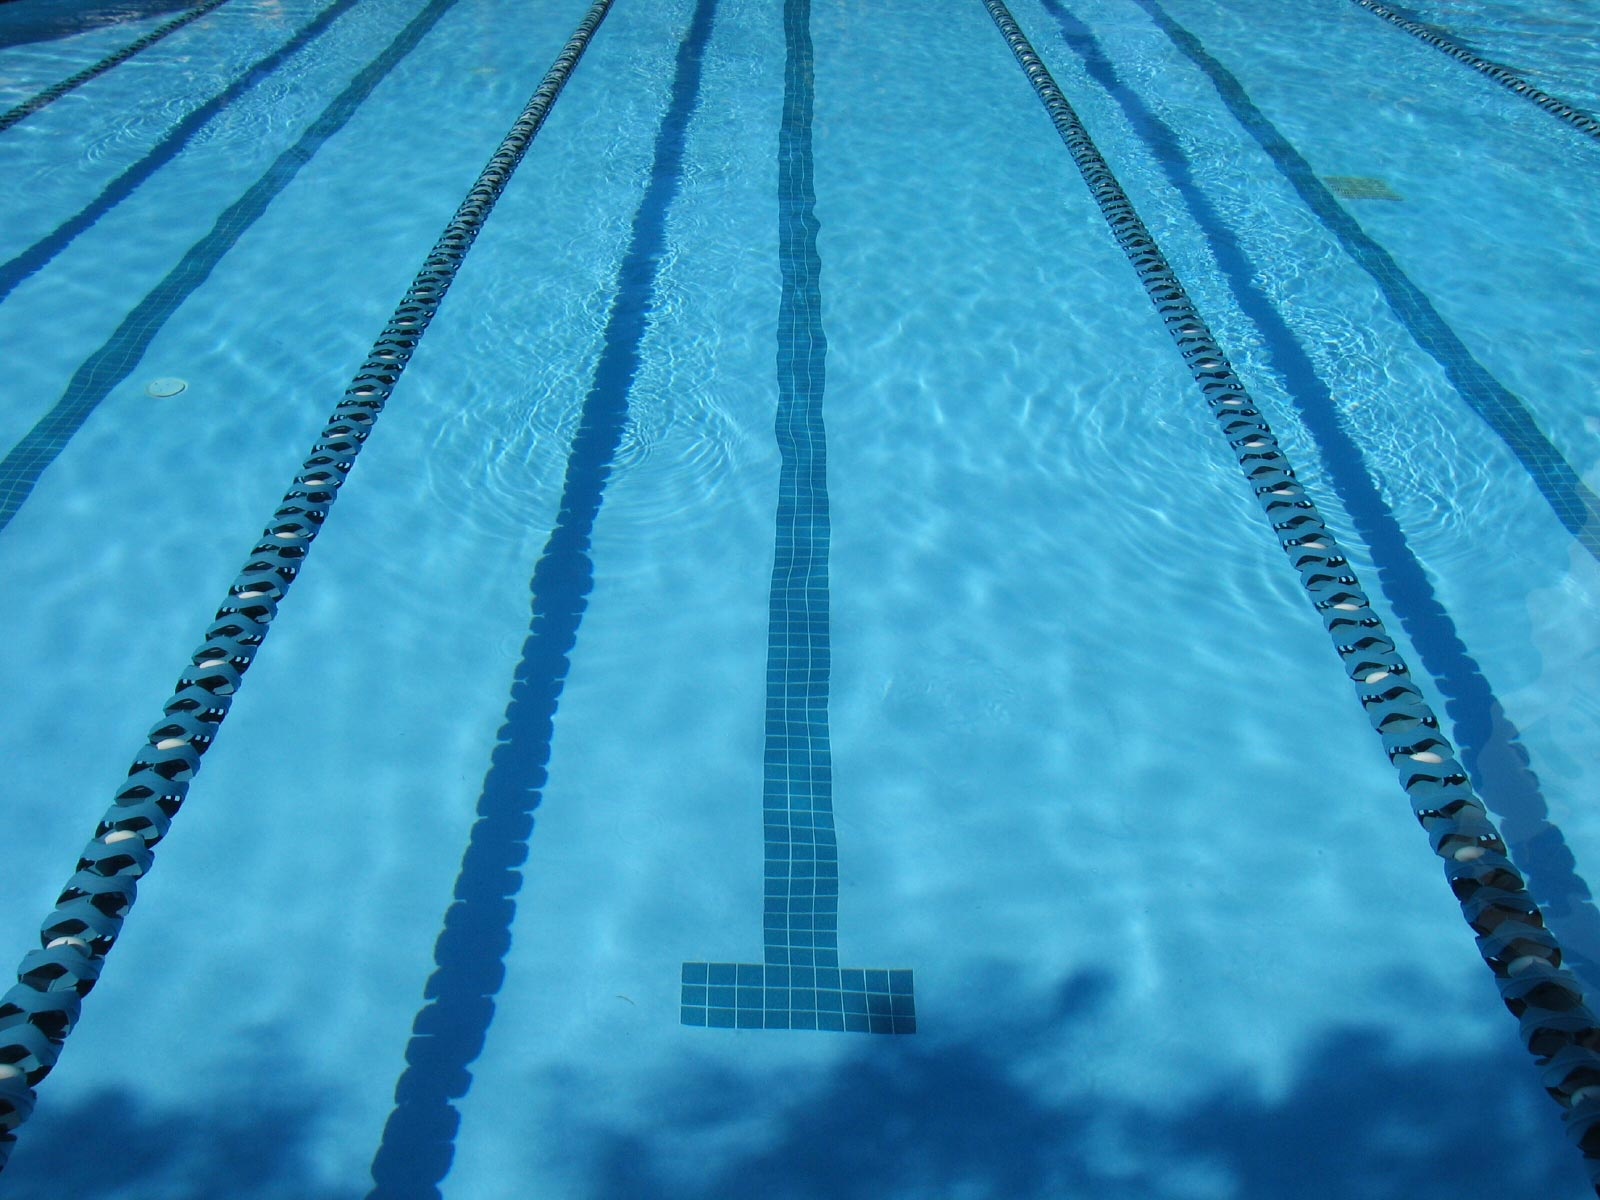 background image - Olympic Swimming Pool Background